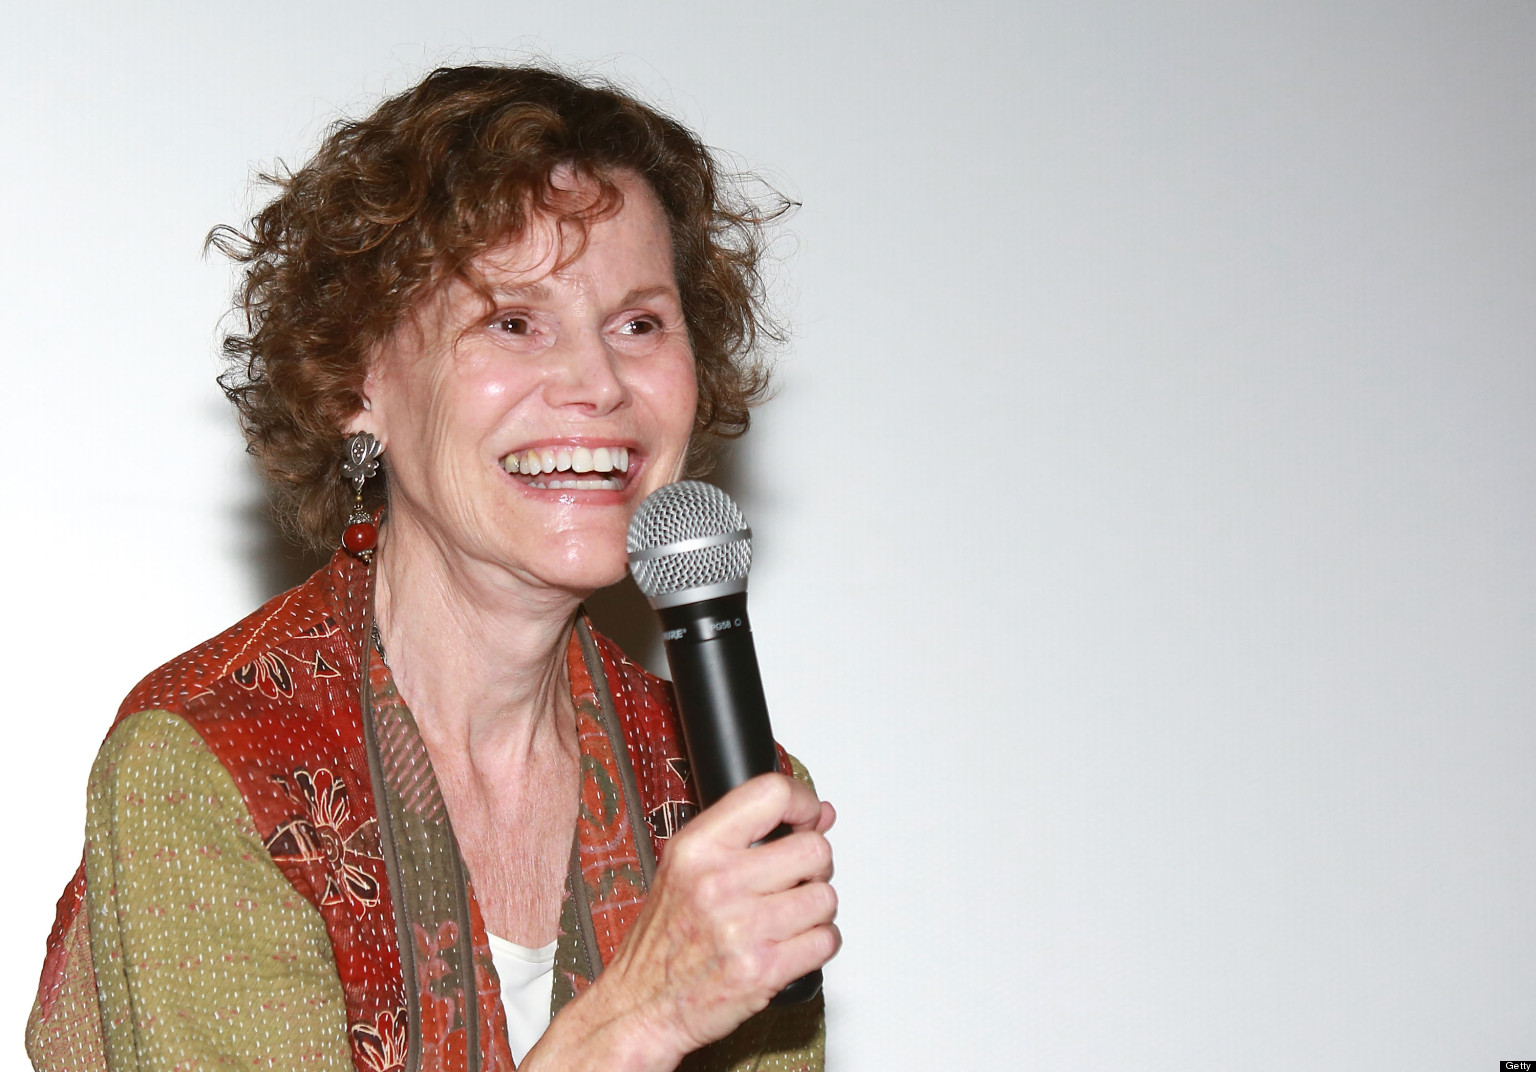 Childhood Anxiety Could Physically >> Judy Blume AMA: Author Reveals Who She Looks Up To, Early Views On Sex, In Reddit Q&A